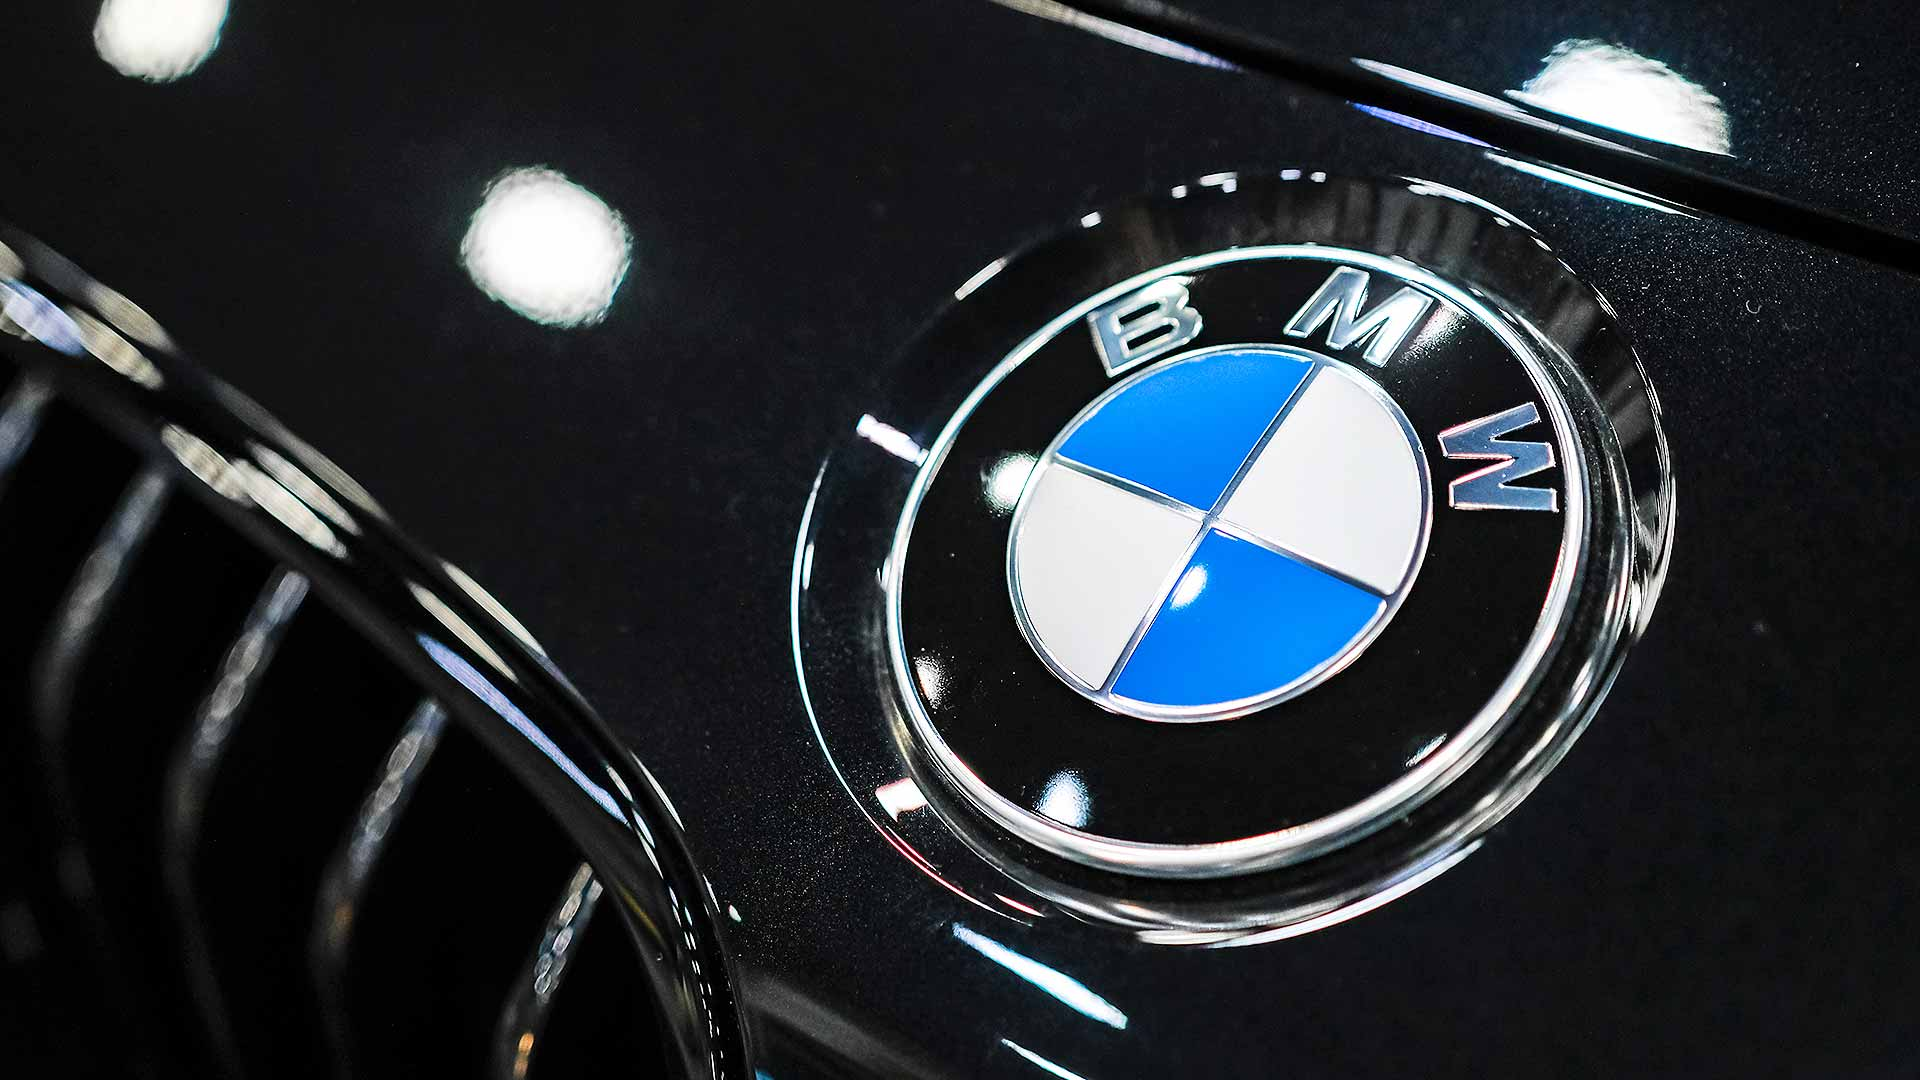 Bmw Confirms New Logo Will Not Appear On Cars